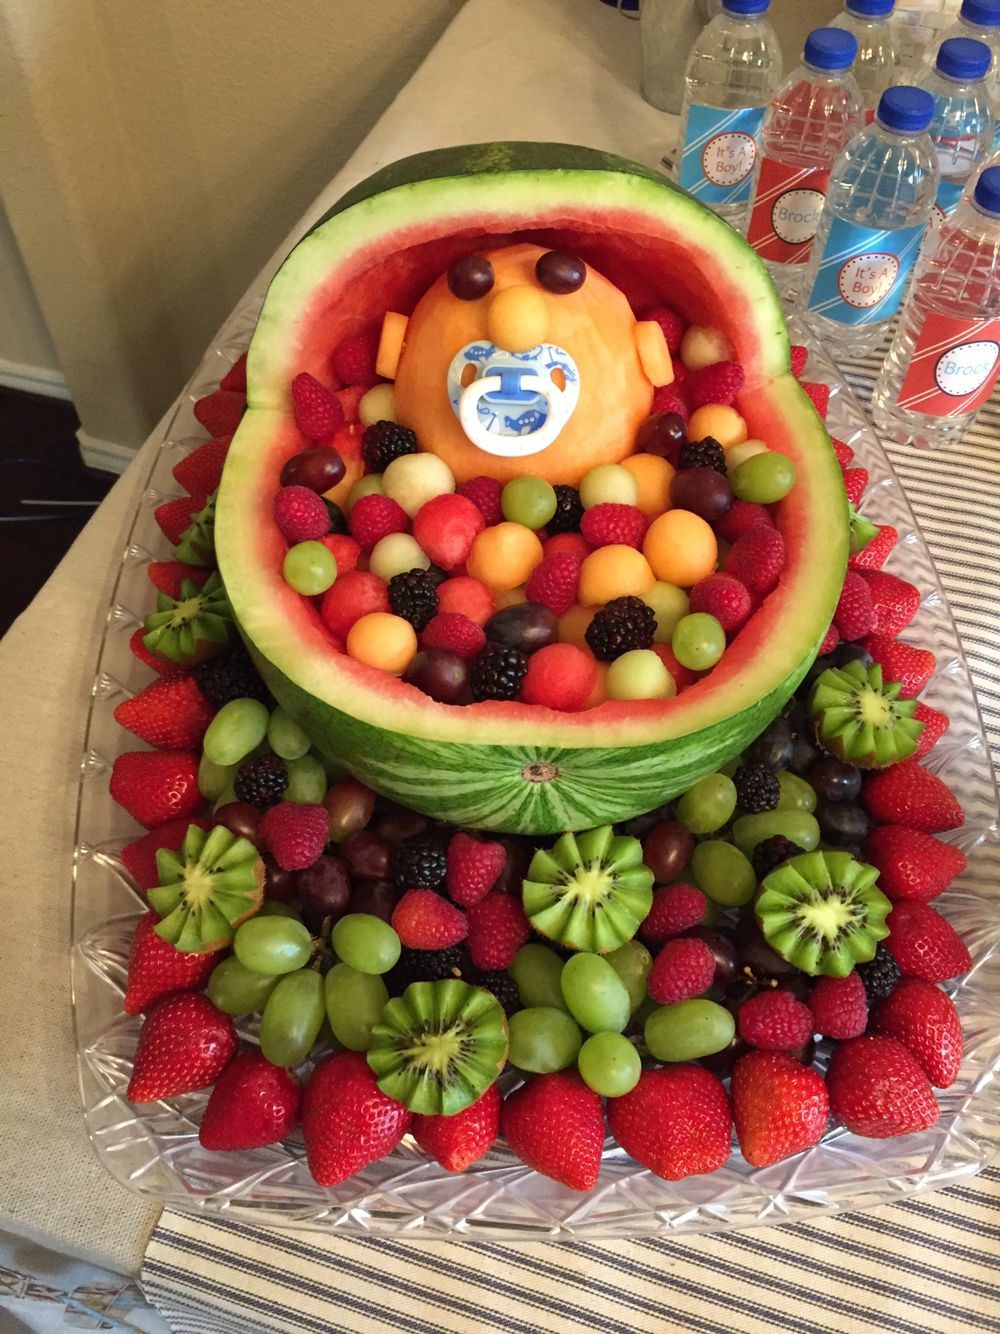 Watermelon Baby Carriage For A Baby Shower! Fruit Baby